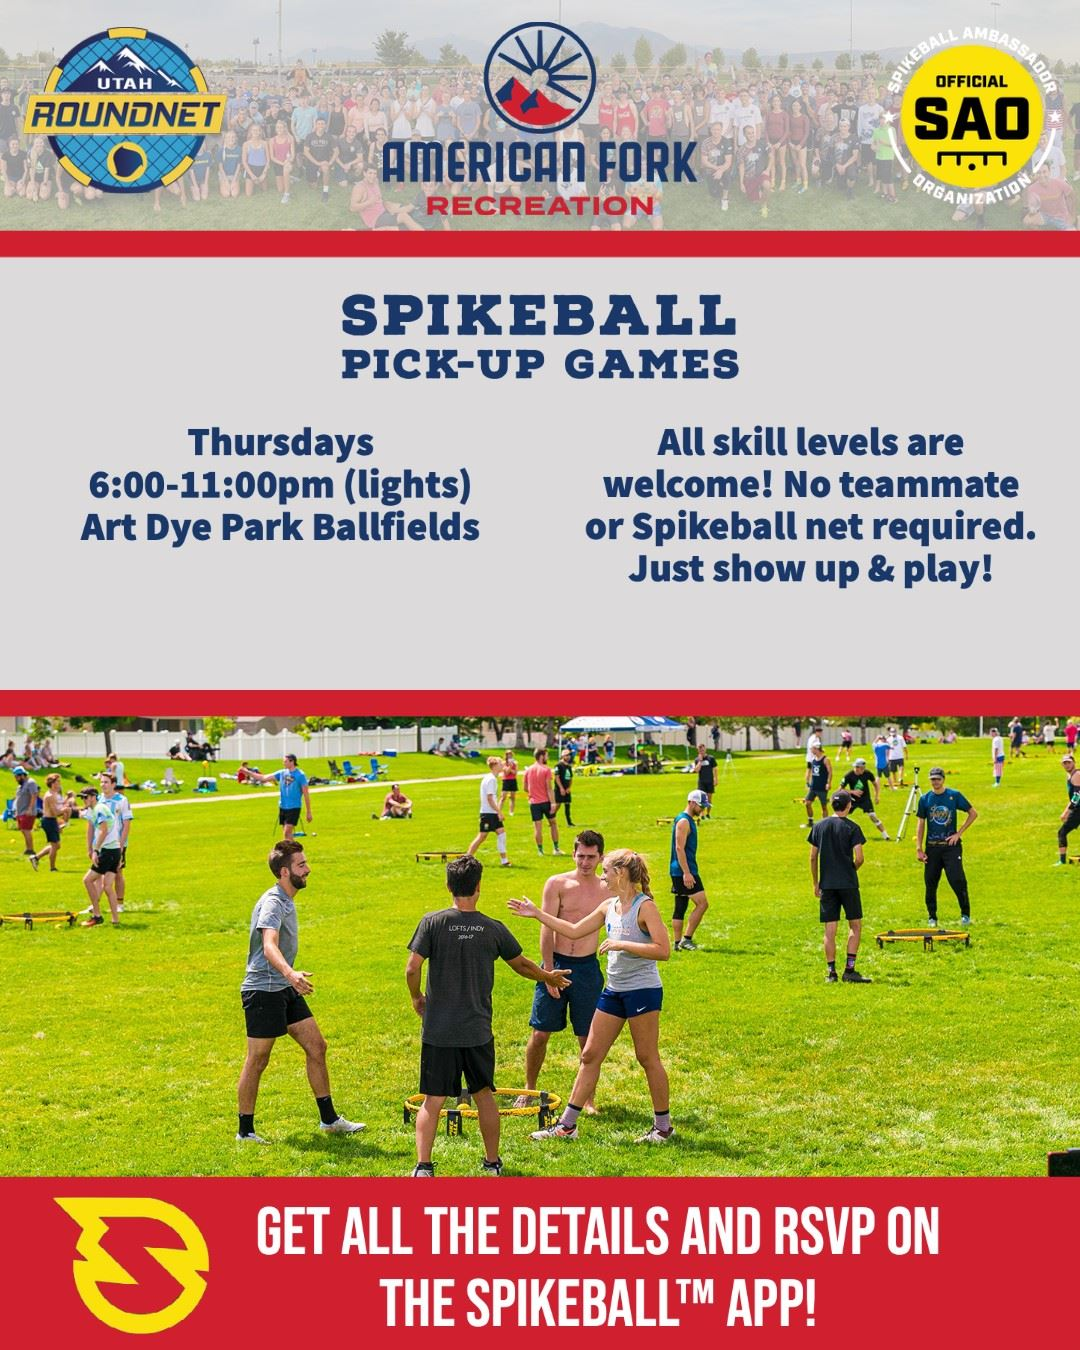 Spikeball open play